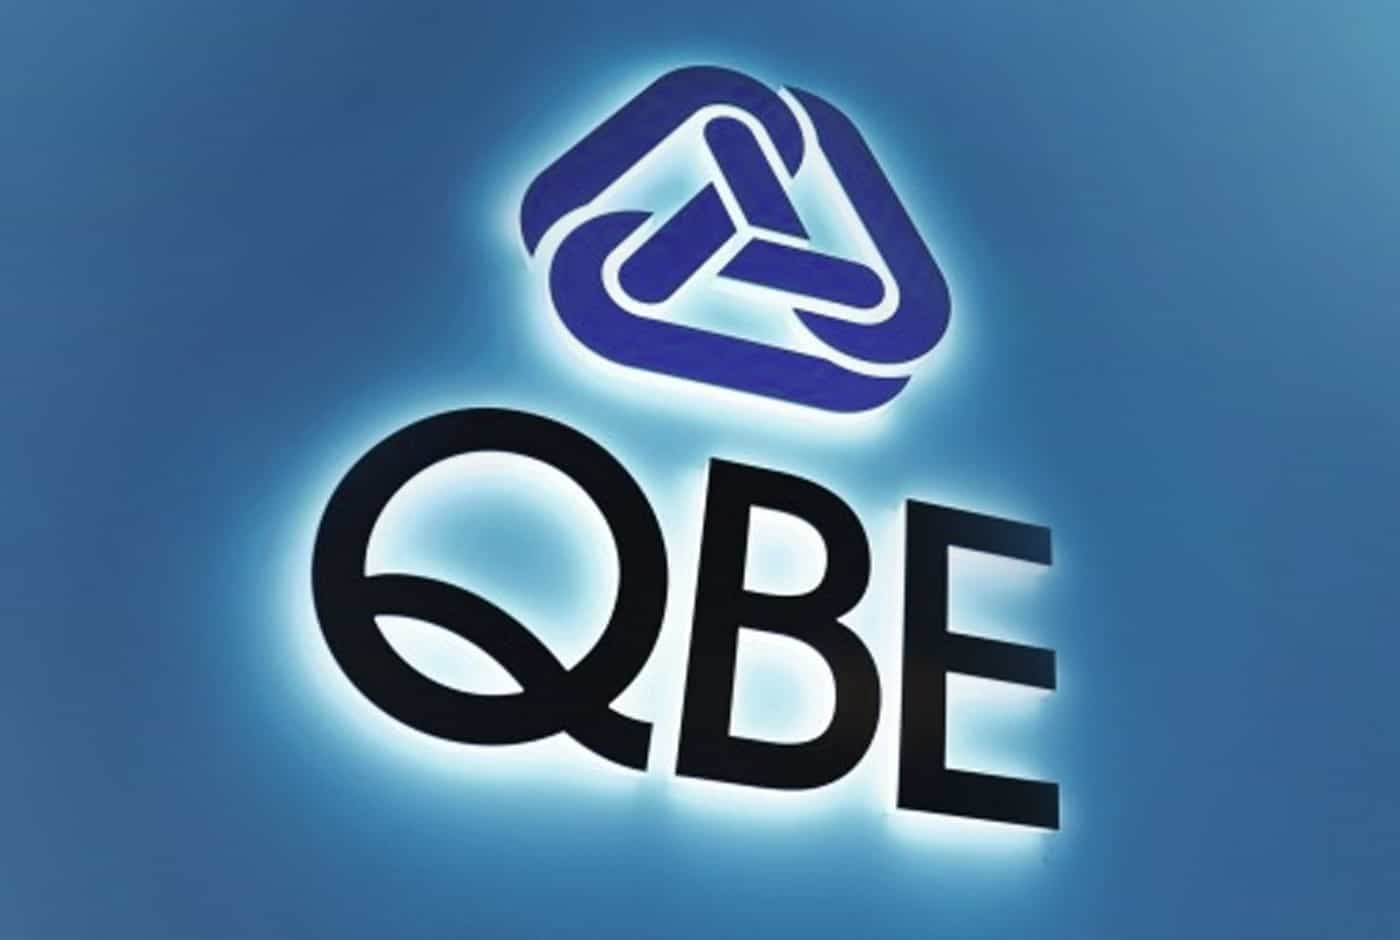 QBE European Operations delivers strong performance with GWP growth of 6% and improved COR of 94.8%